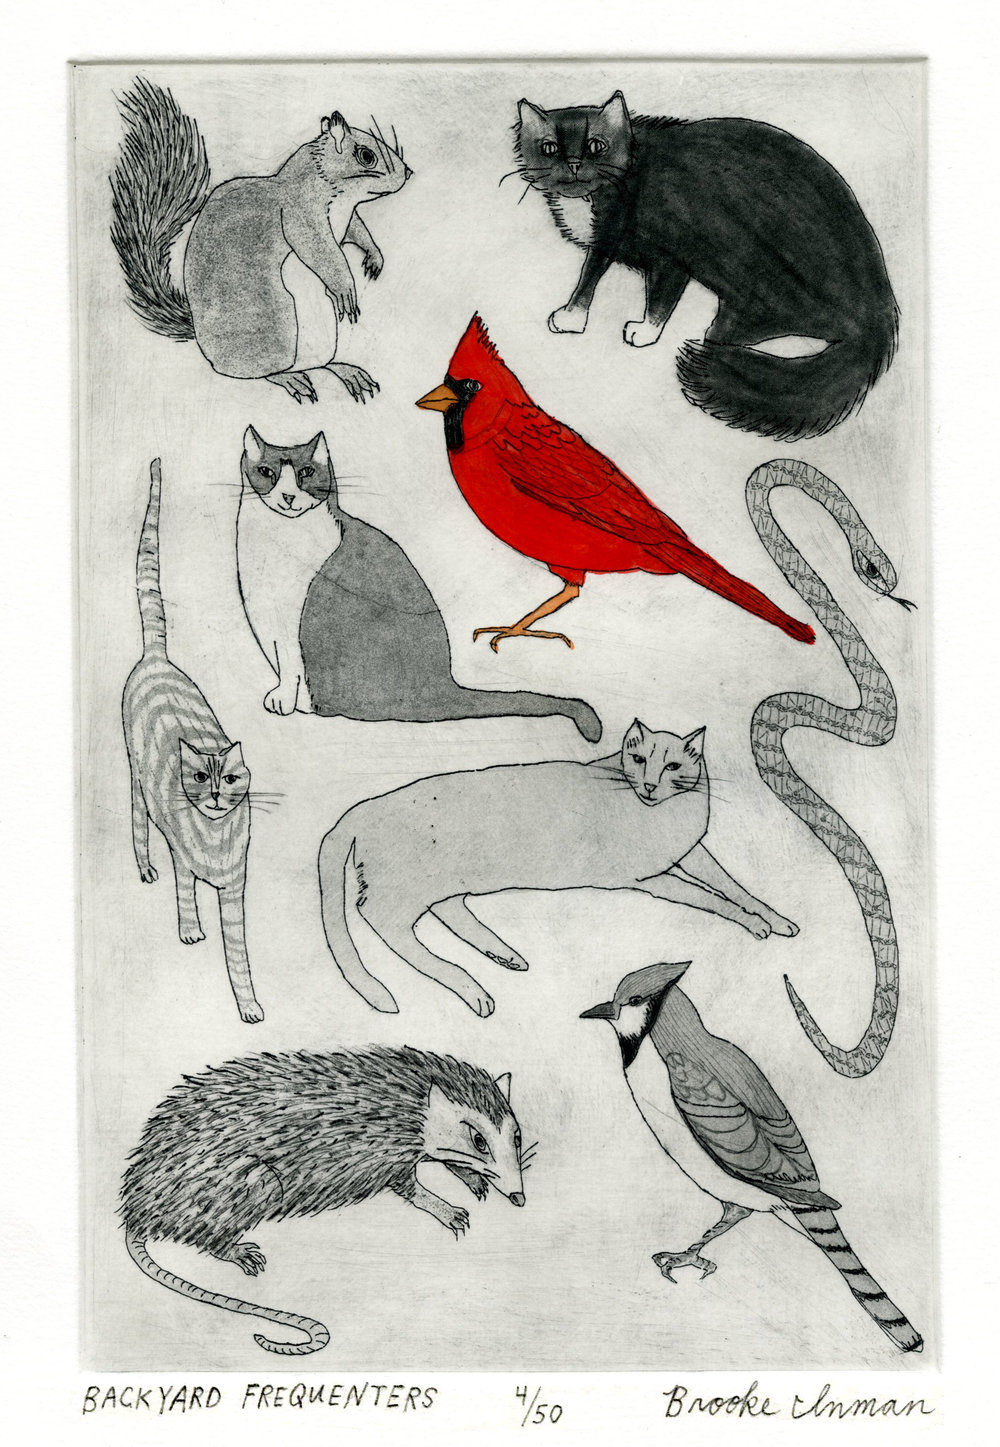 BROOKE INMAN, BACKYARD FREQUENTERS, ETCHING AND HAND COLORING